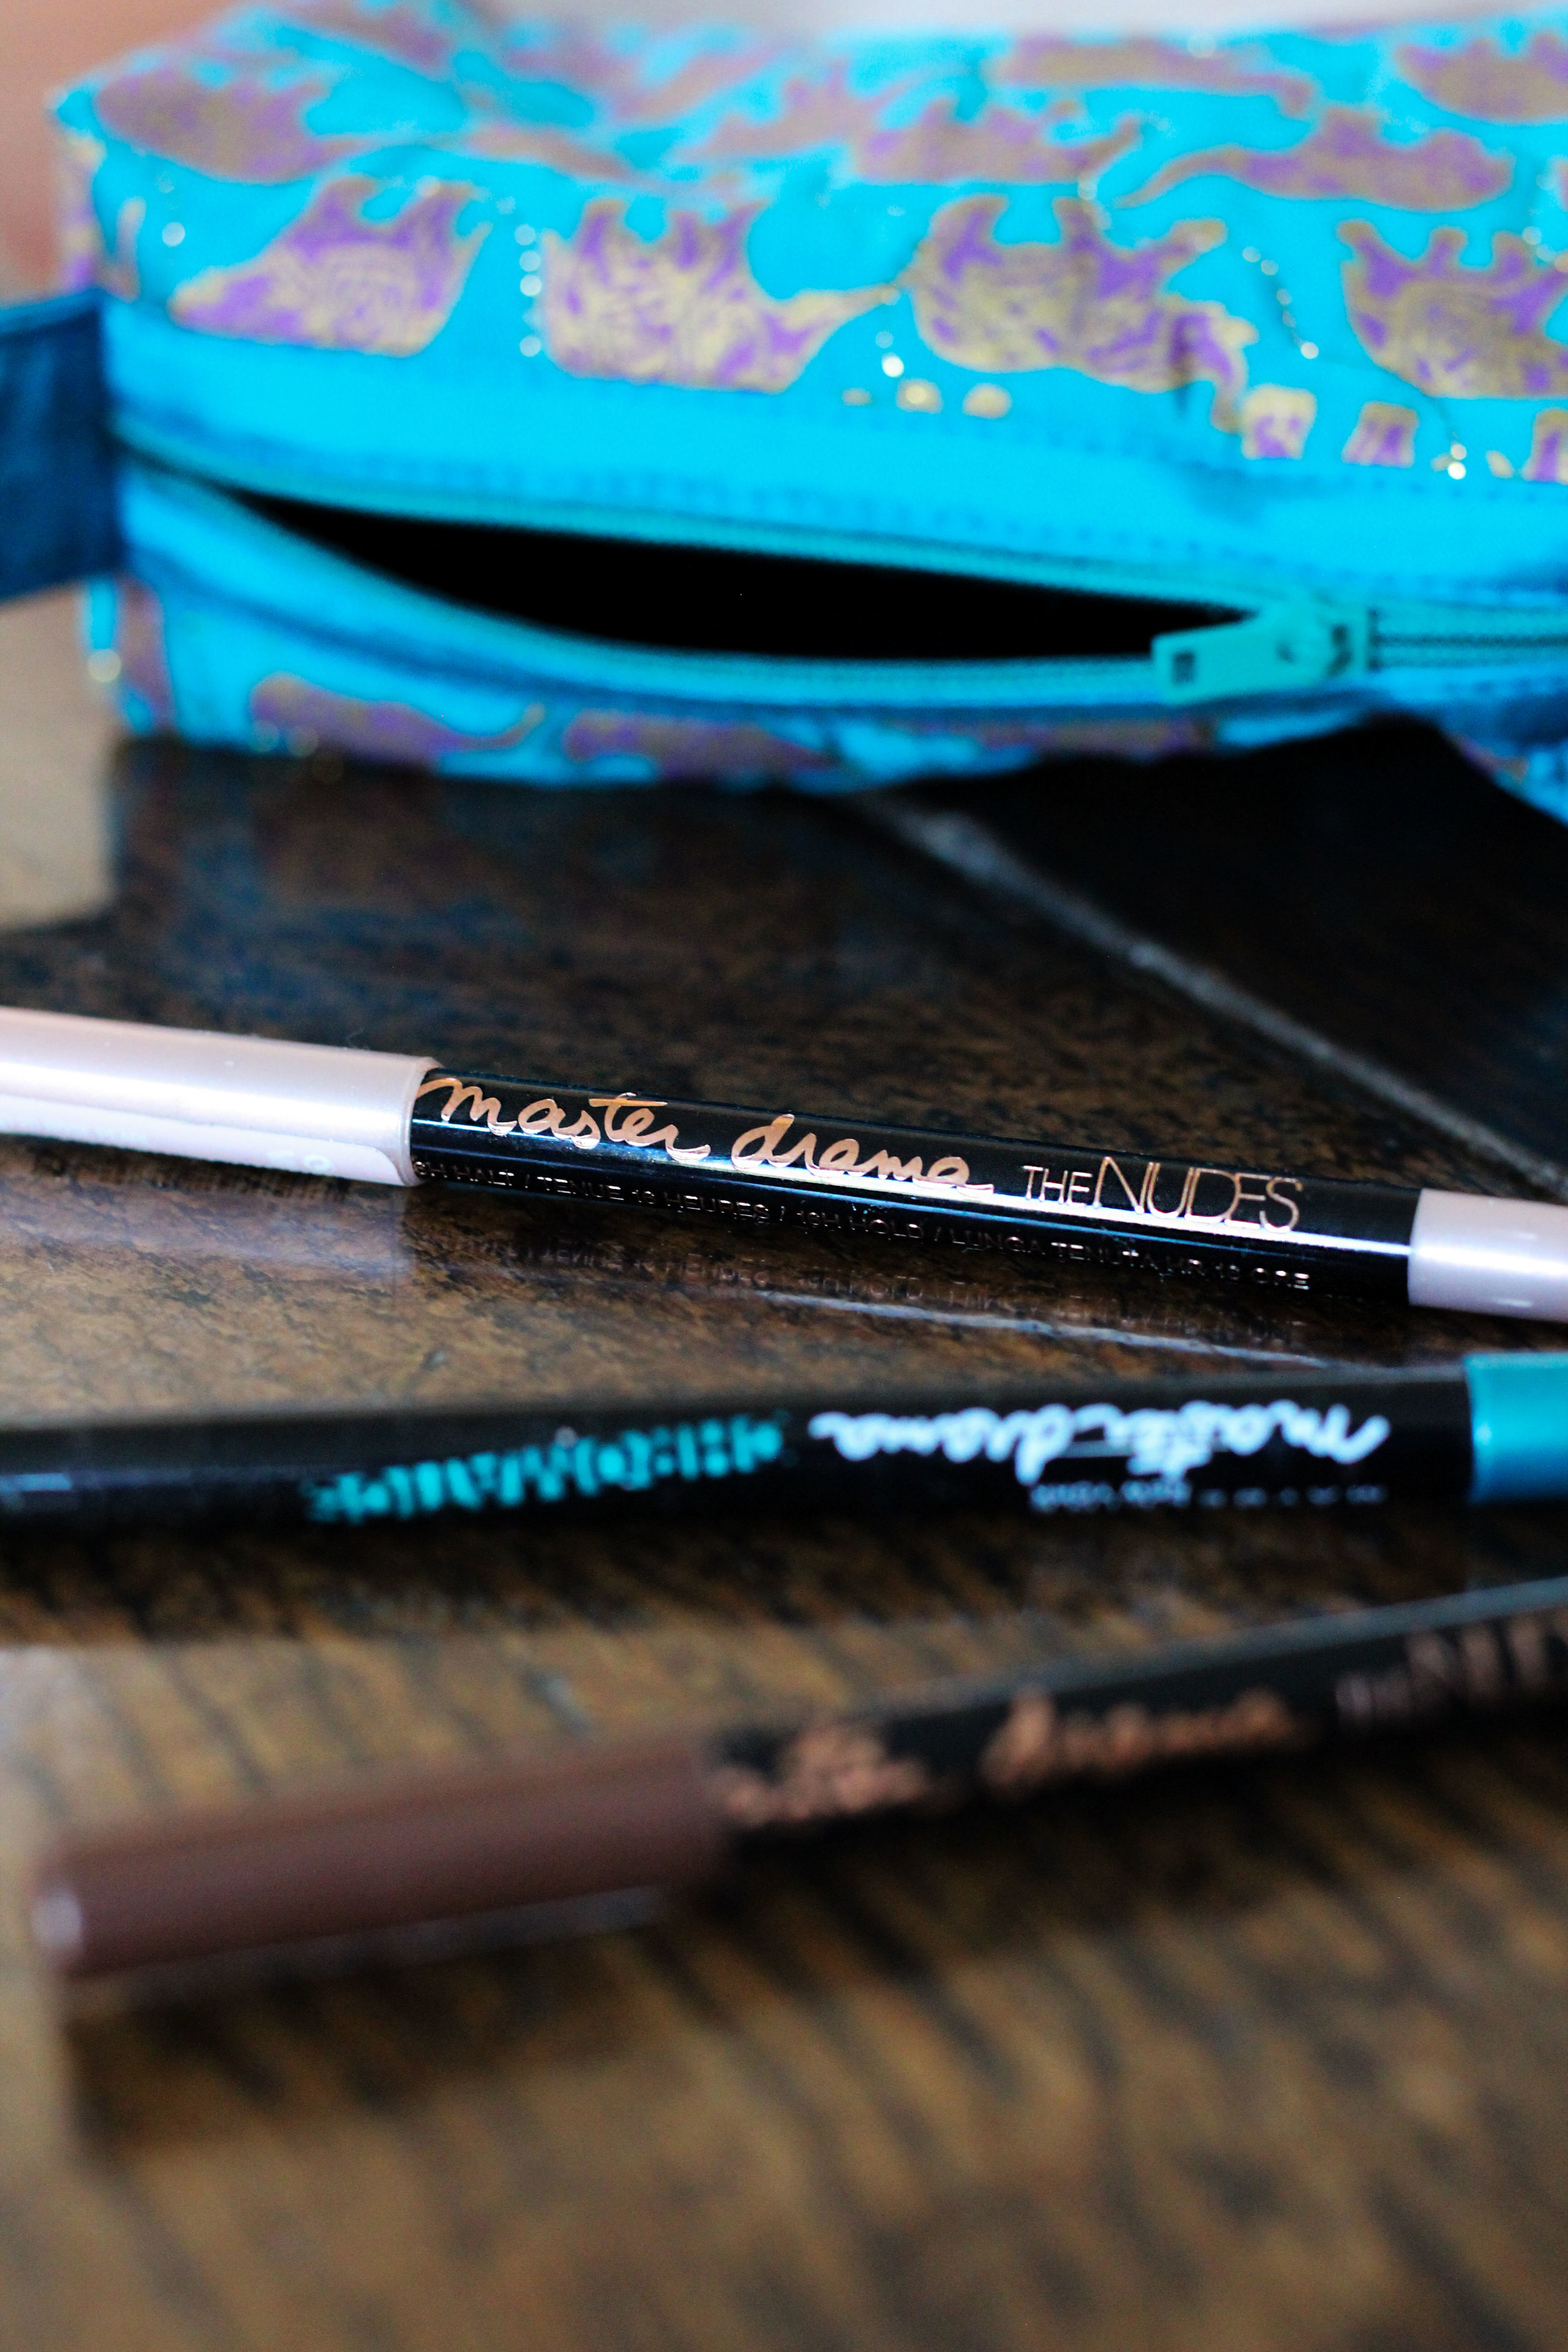 The makeup marvel inquestion is the Master Drama Pencil Eyeliners from Maybelline, a super soft gel-like pencil liner that goes on like a dream and stays put, no questions asked. -